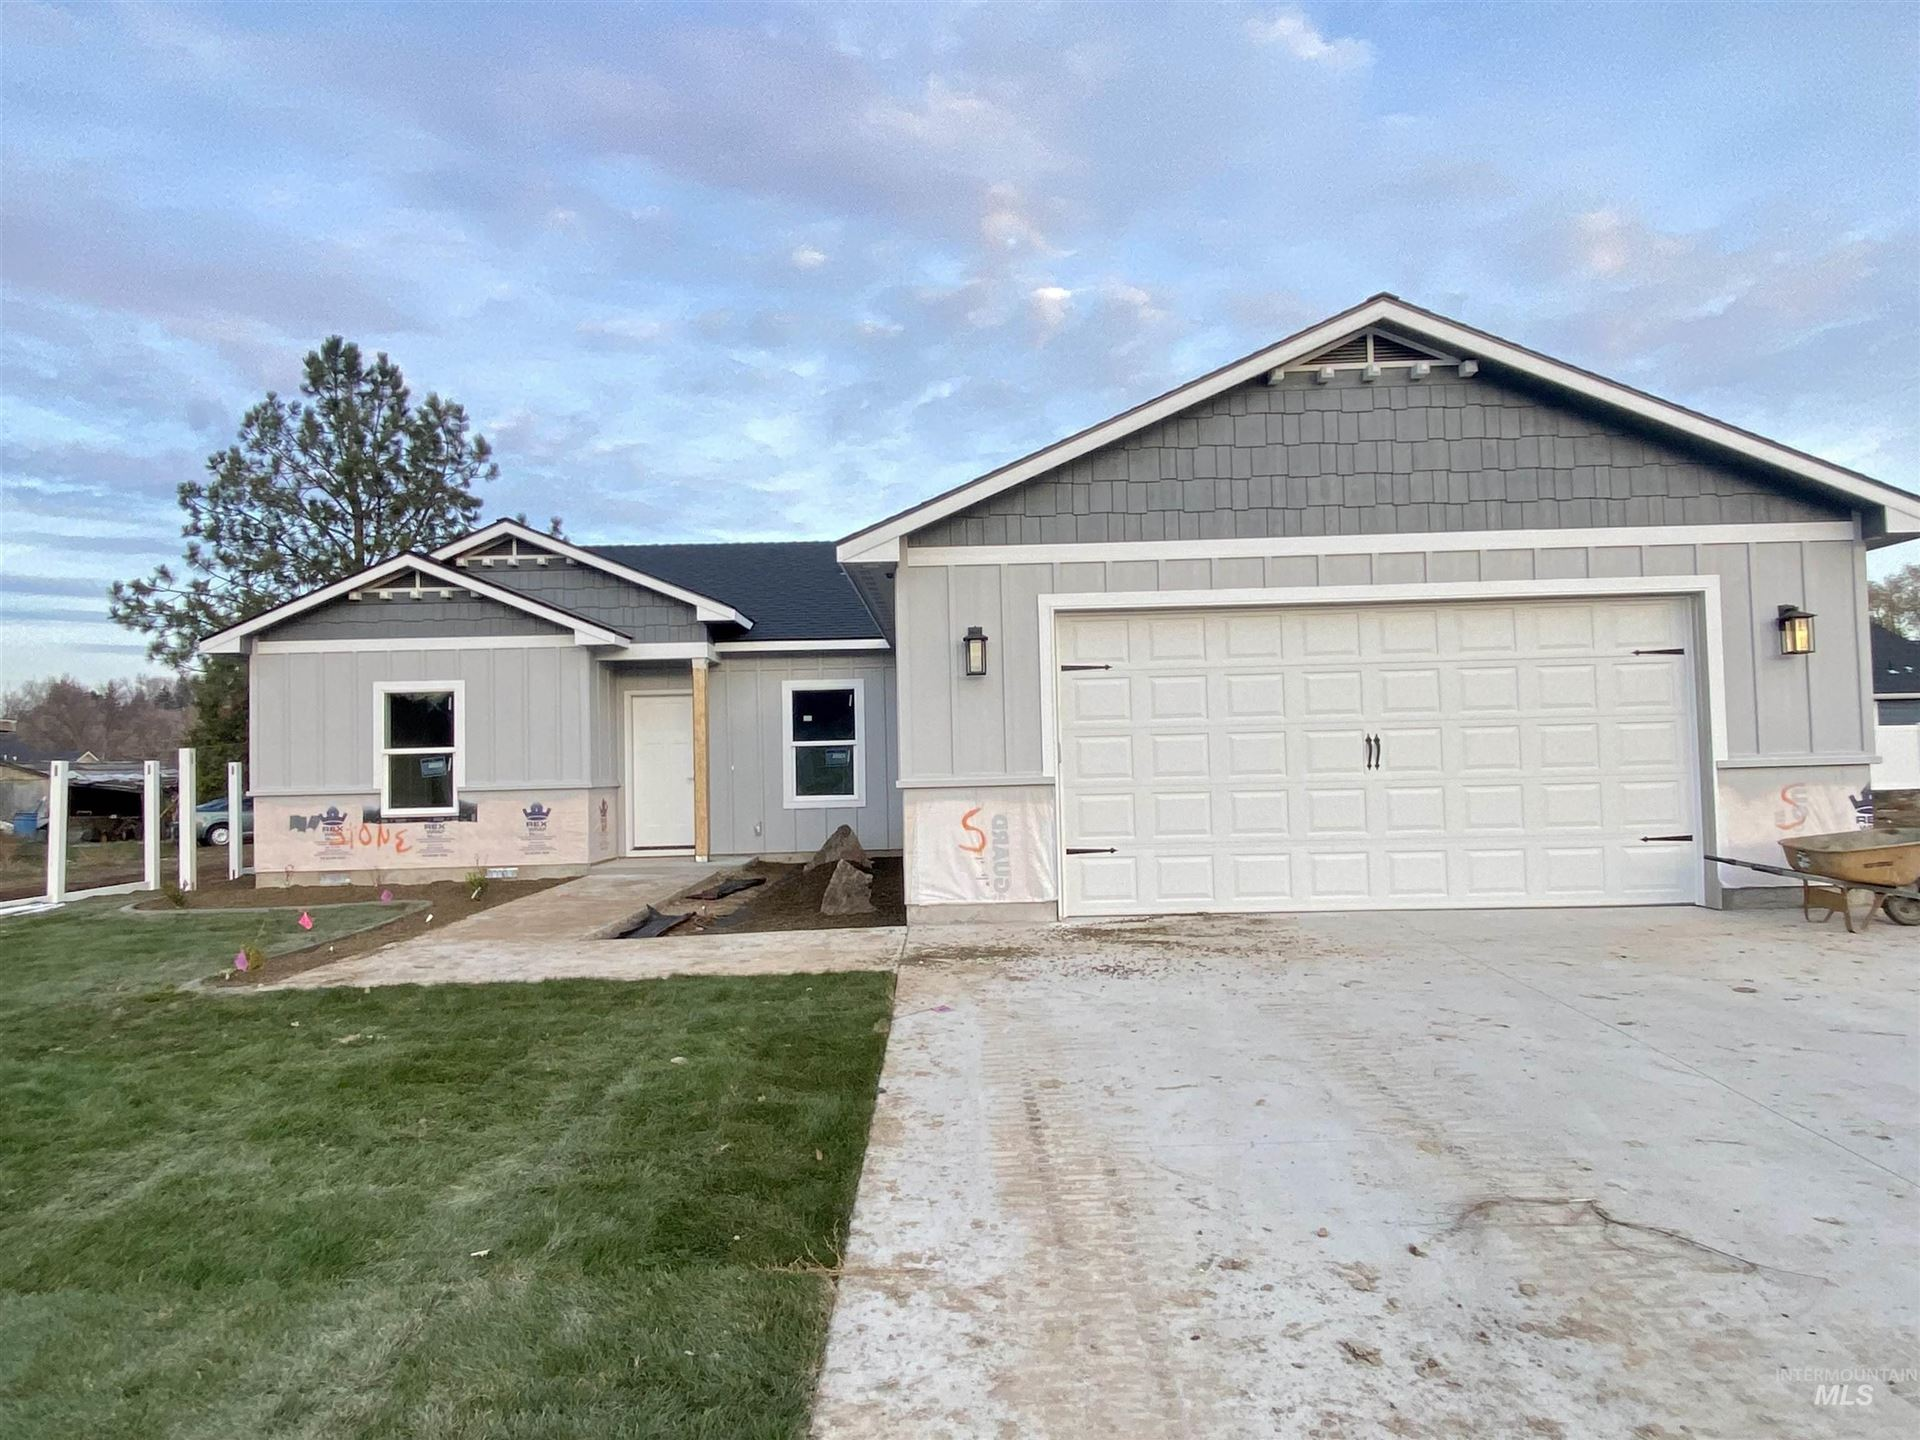 497 S 14th St, Payette, ID 83661 - MLS#: 98816838